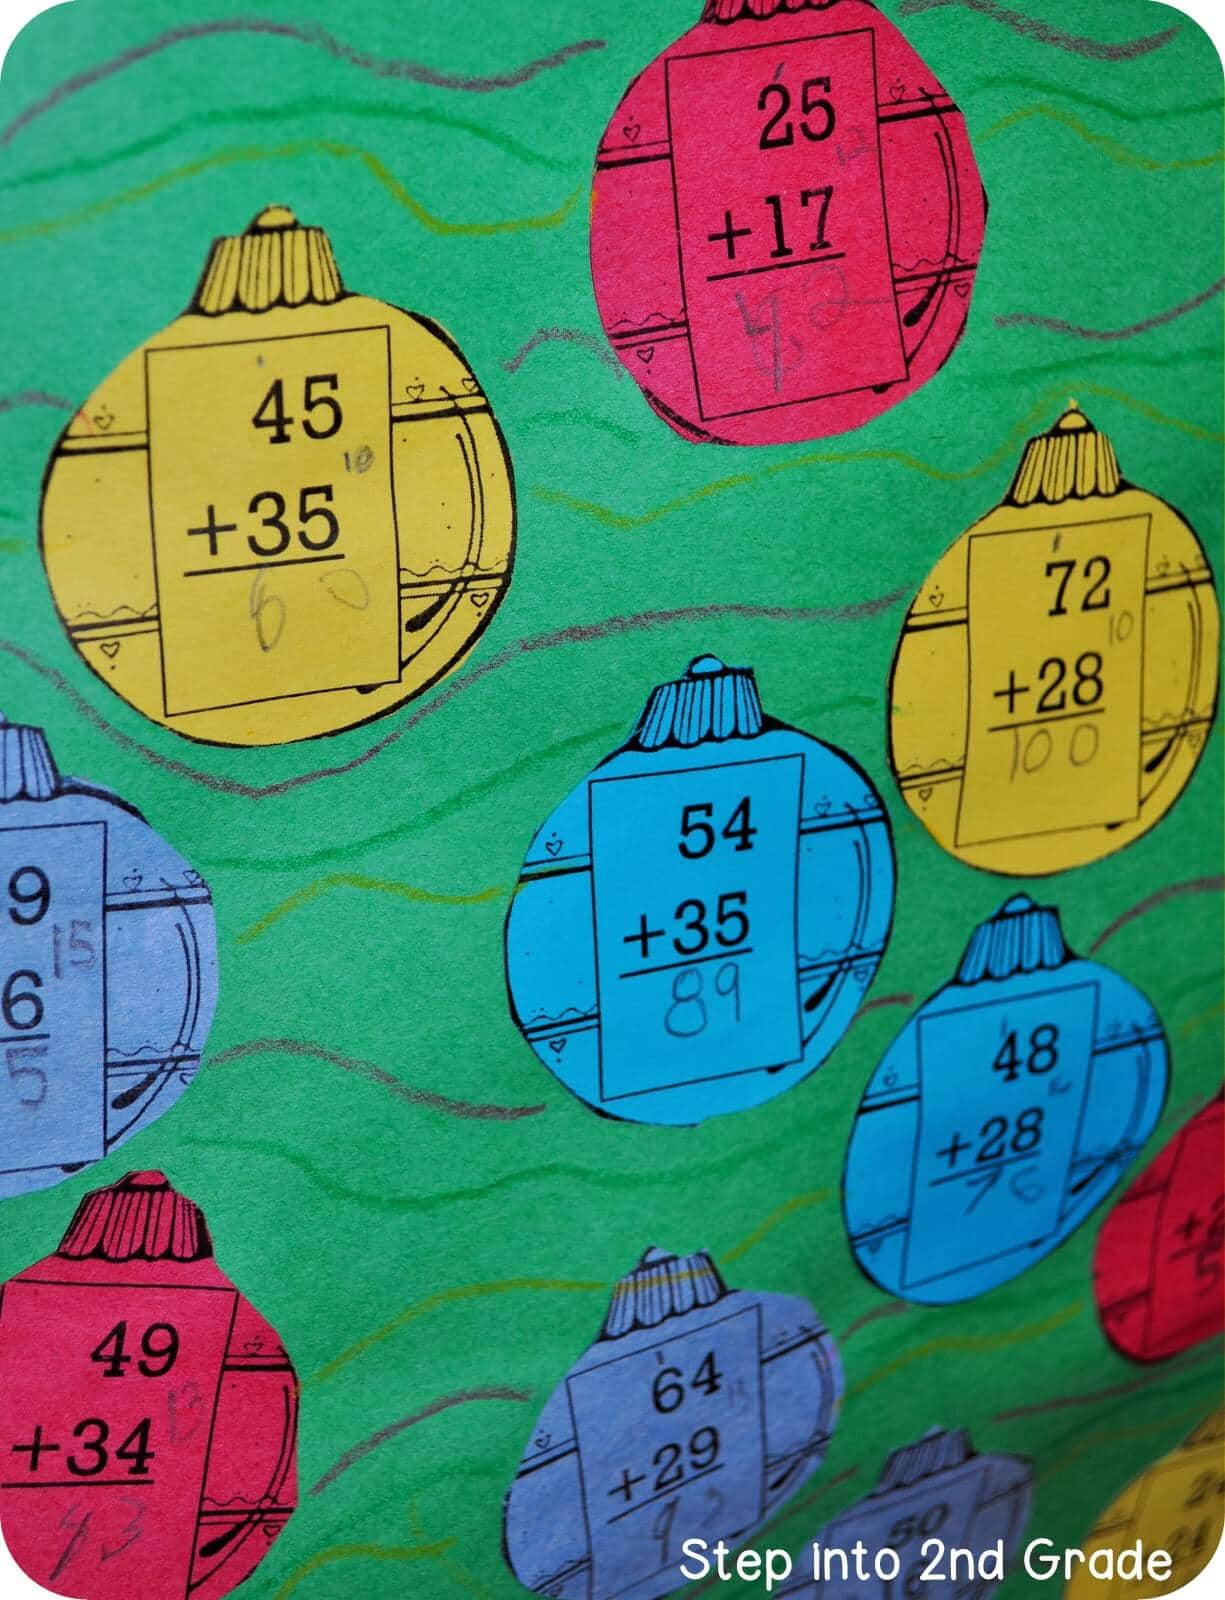 Christmas Tree Math - Step into 2nd Grade